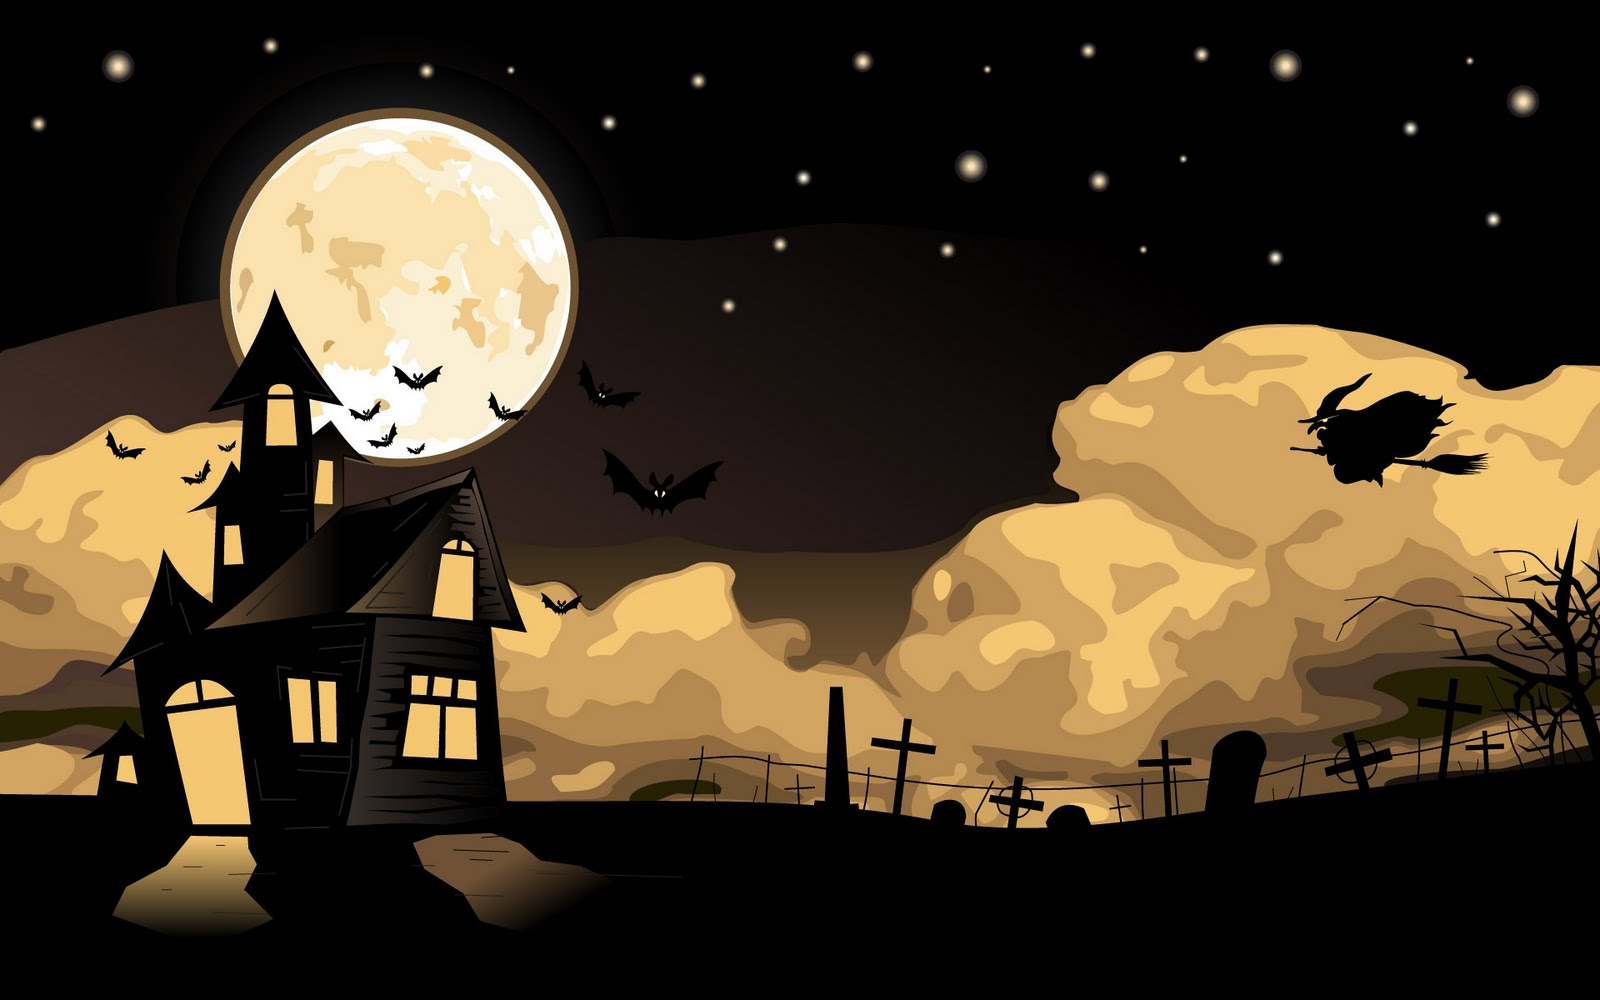 Cool Wallpaper High Resolution Halloween - high-resolution-halloween  2018_704179.jpg